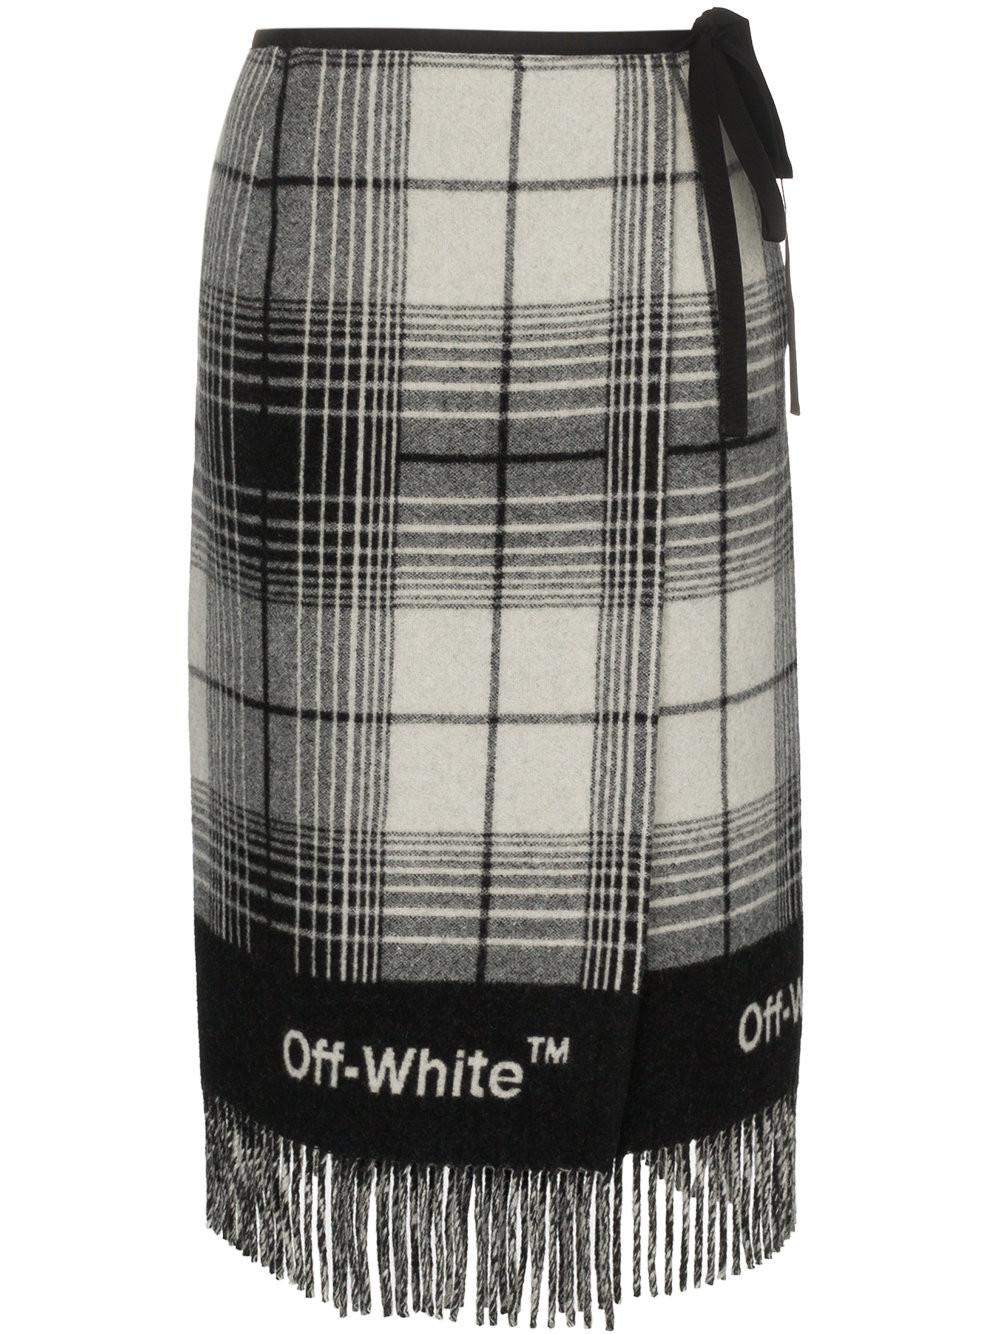 bc92554167e0 Off-White c o Virgil Abloh Check Blanket Skirt in Black - Lyst